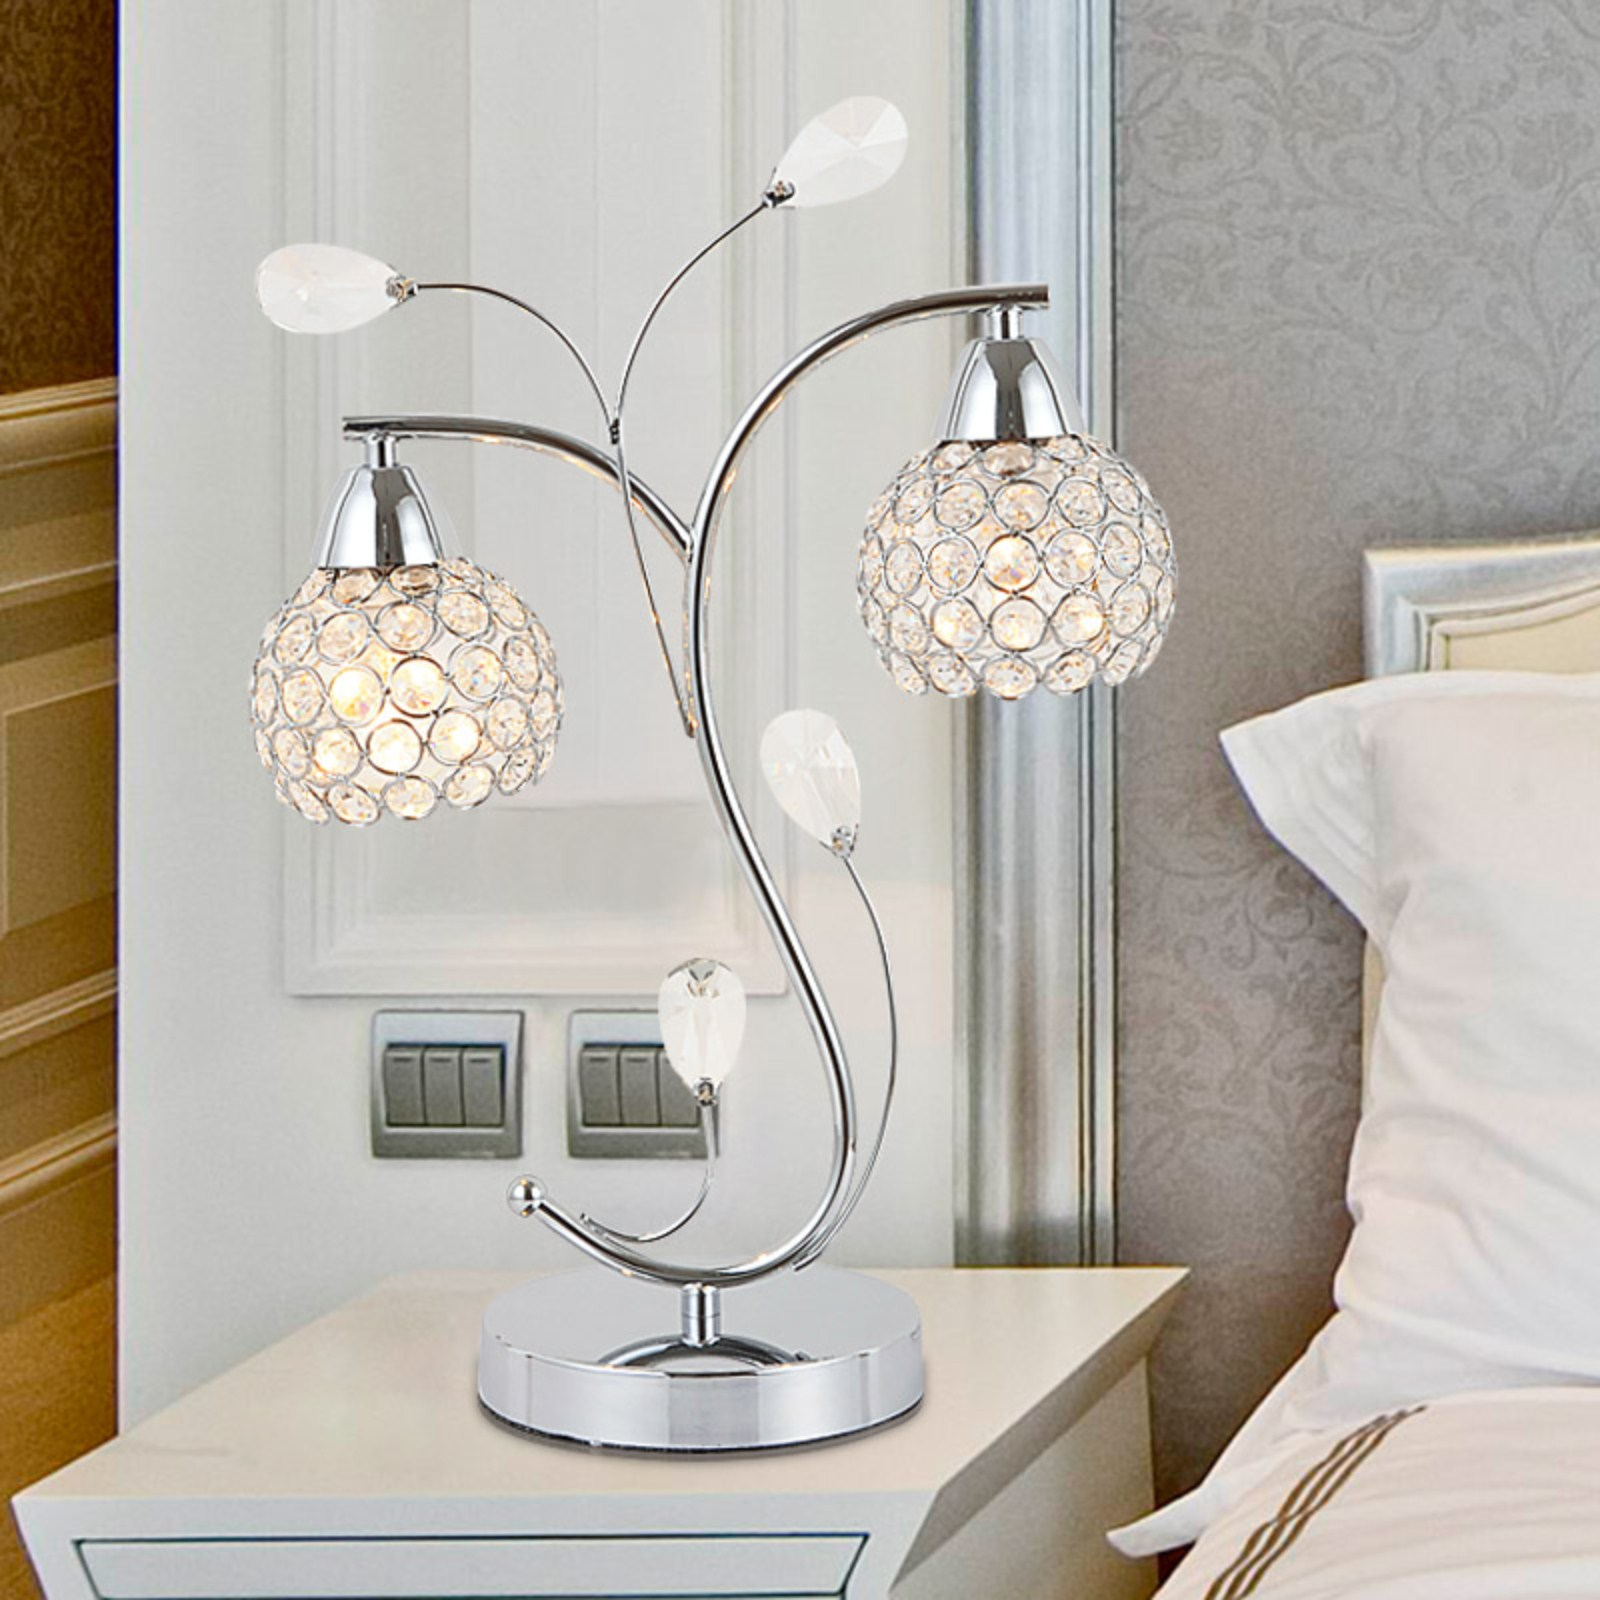 10 great spots to place Side table lamps | Warisan Lighting